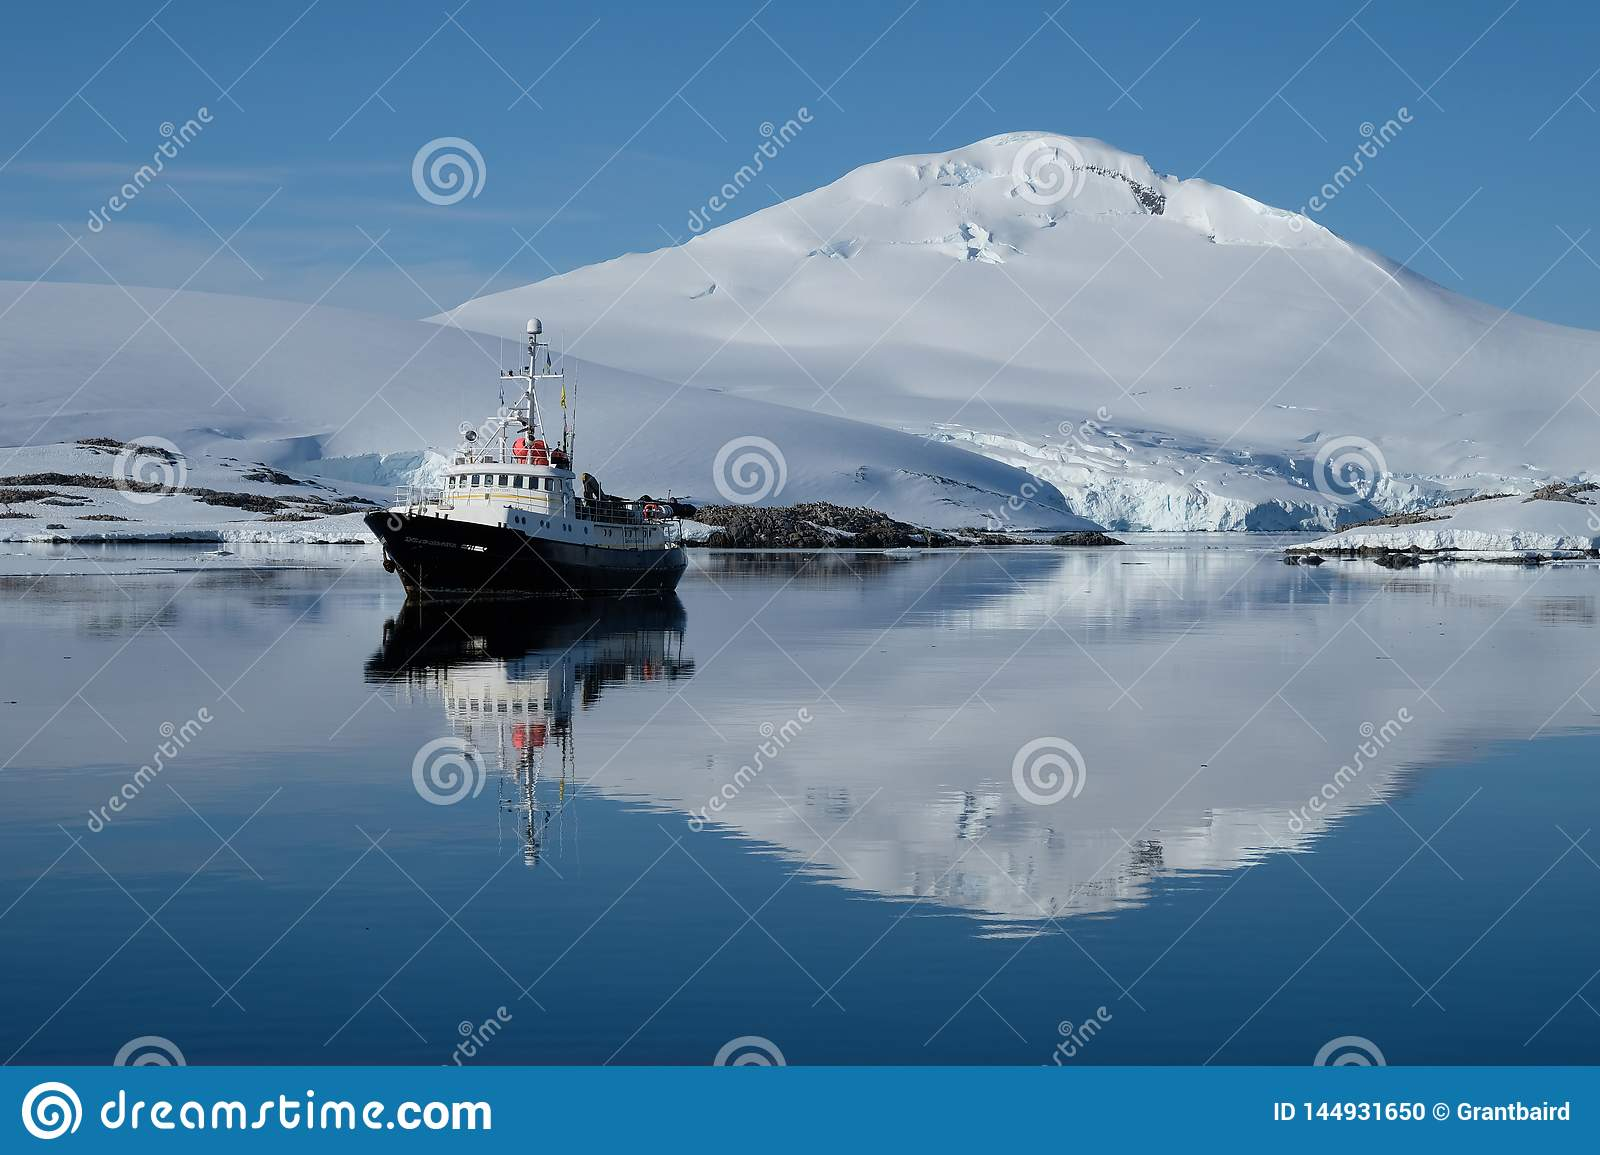 Antarctica boat ripples in a mirror blue bay beneath white snow capped mountain